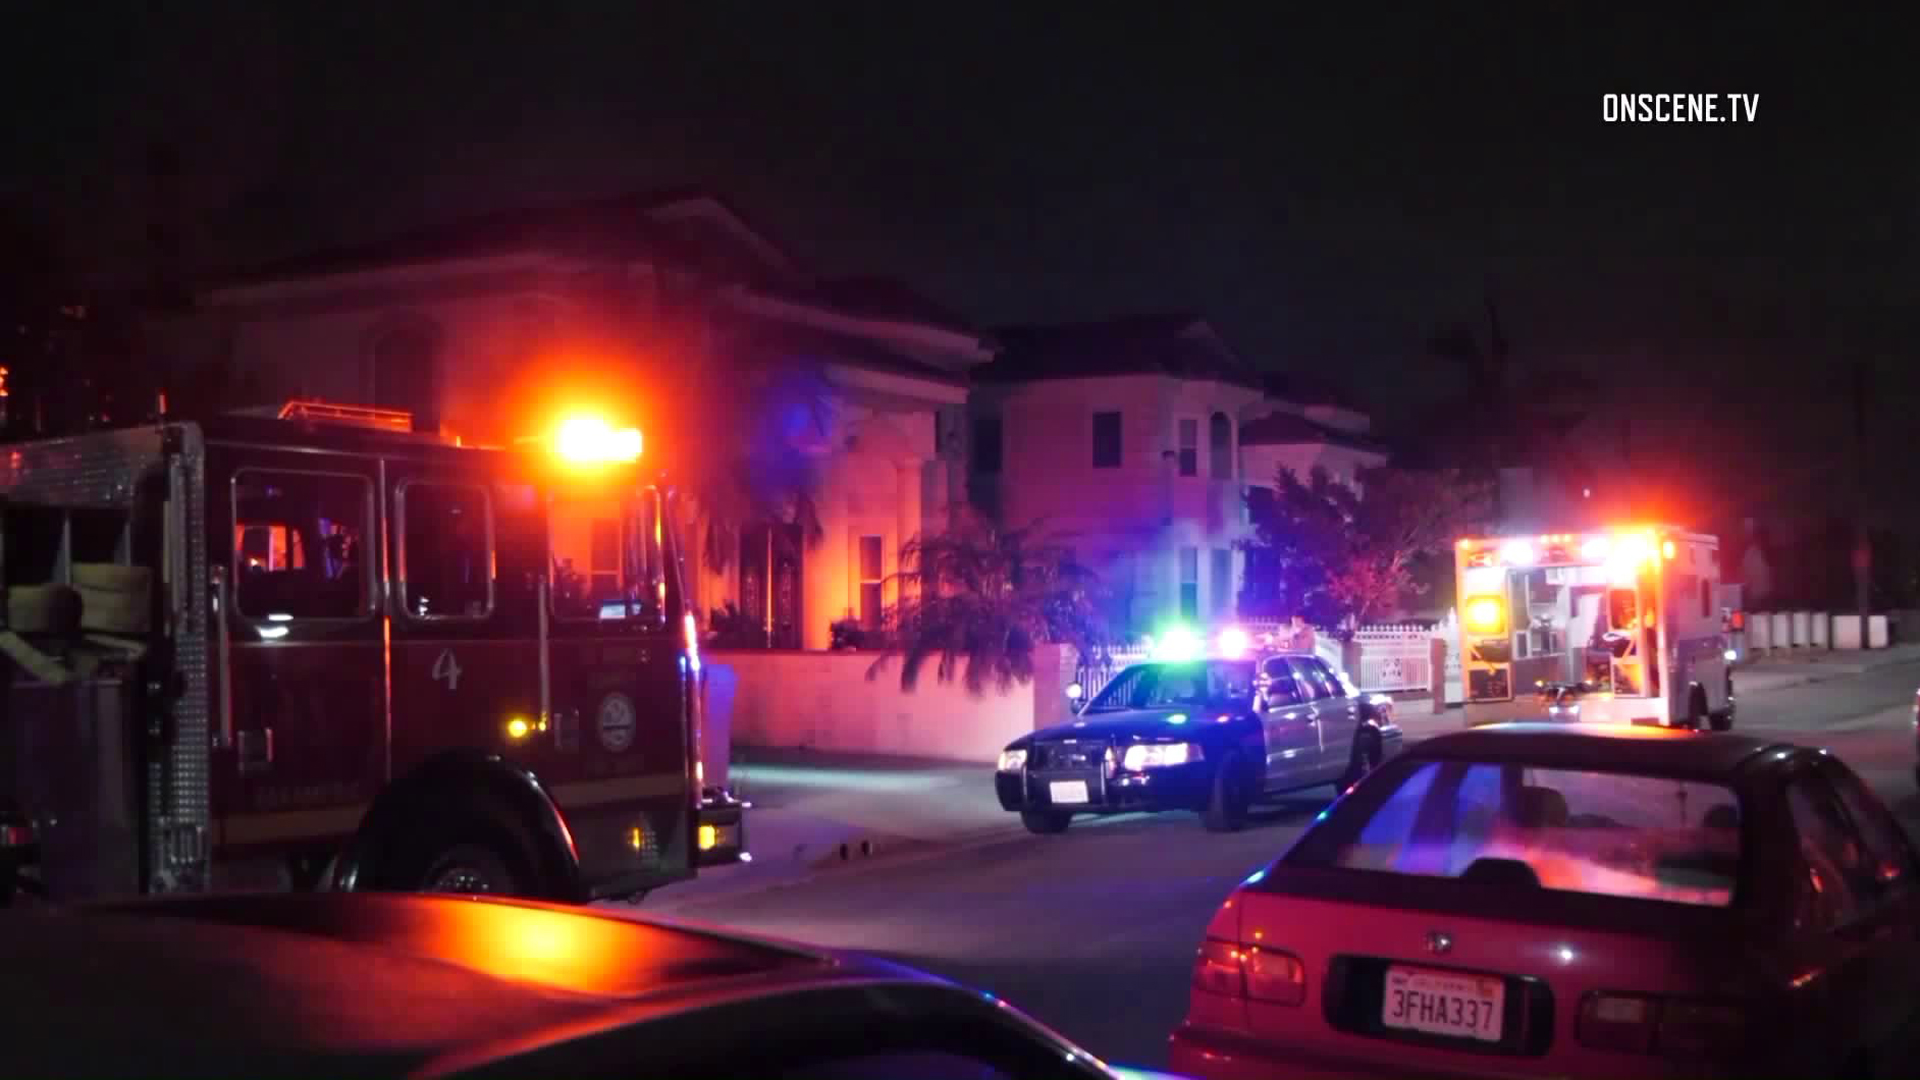 Police and fire officials respond to a home invasion in Rosemead on Sept. 11, 2018. (Credit: OnScene.TV)